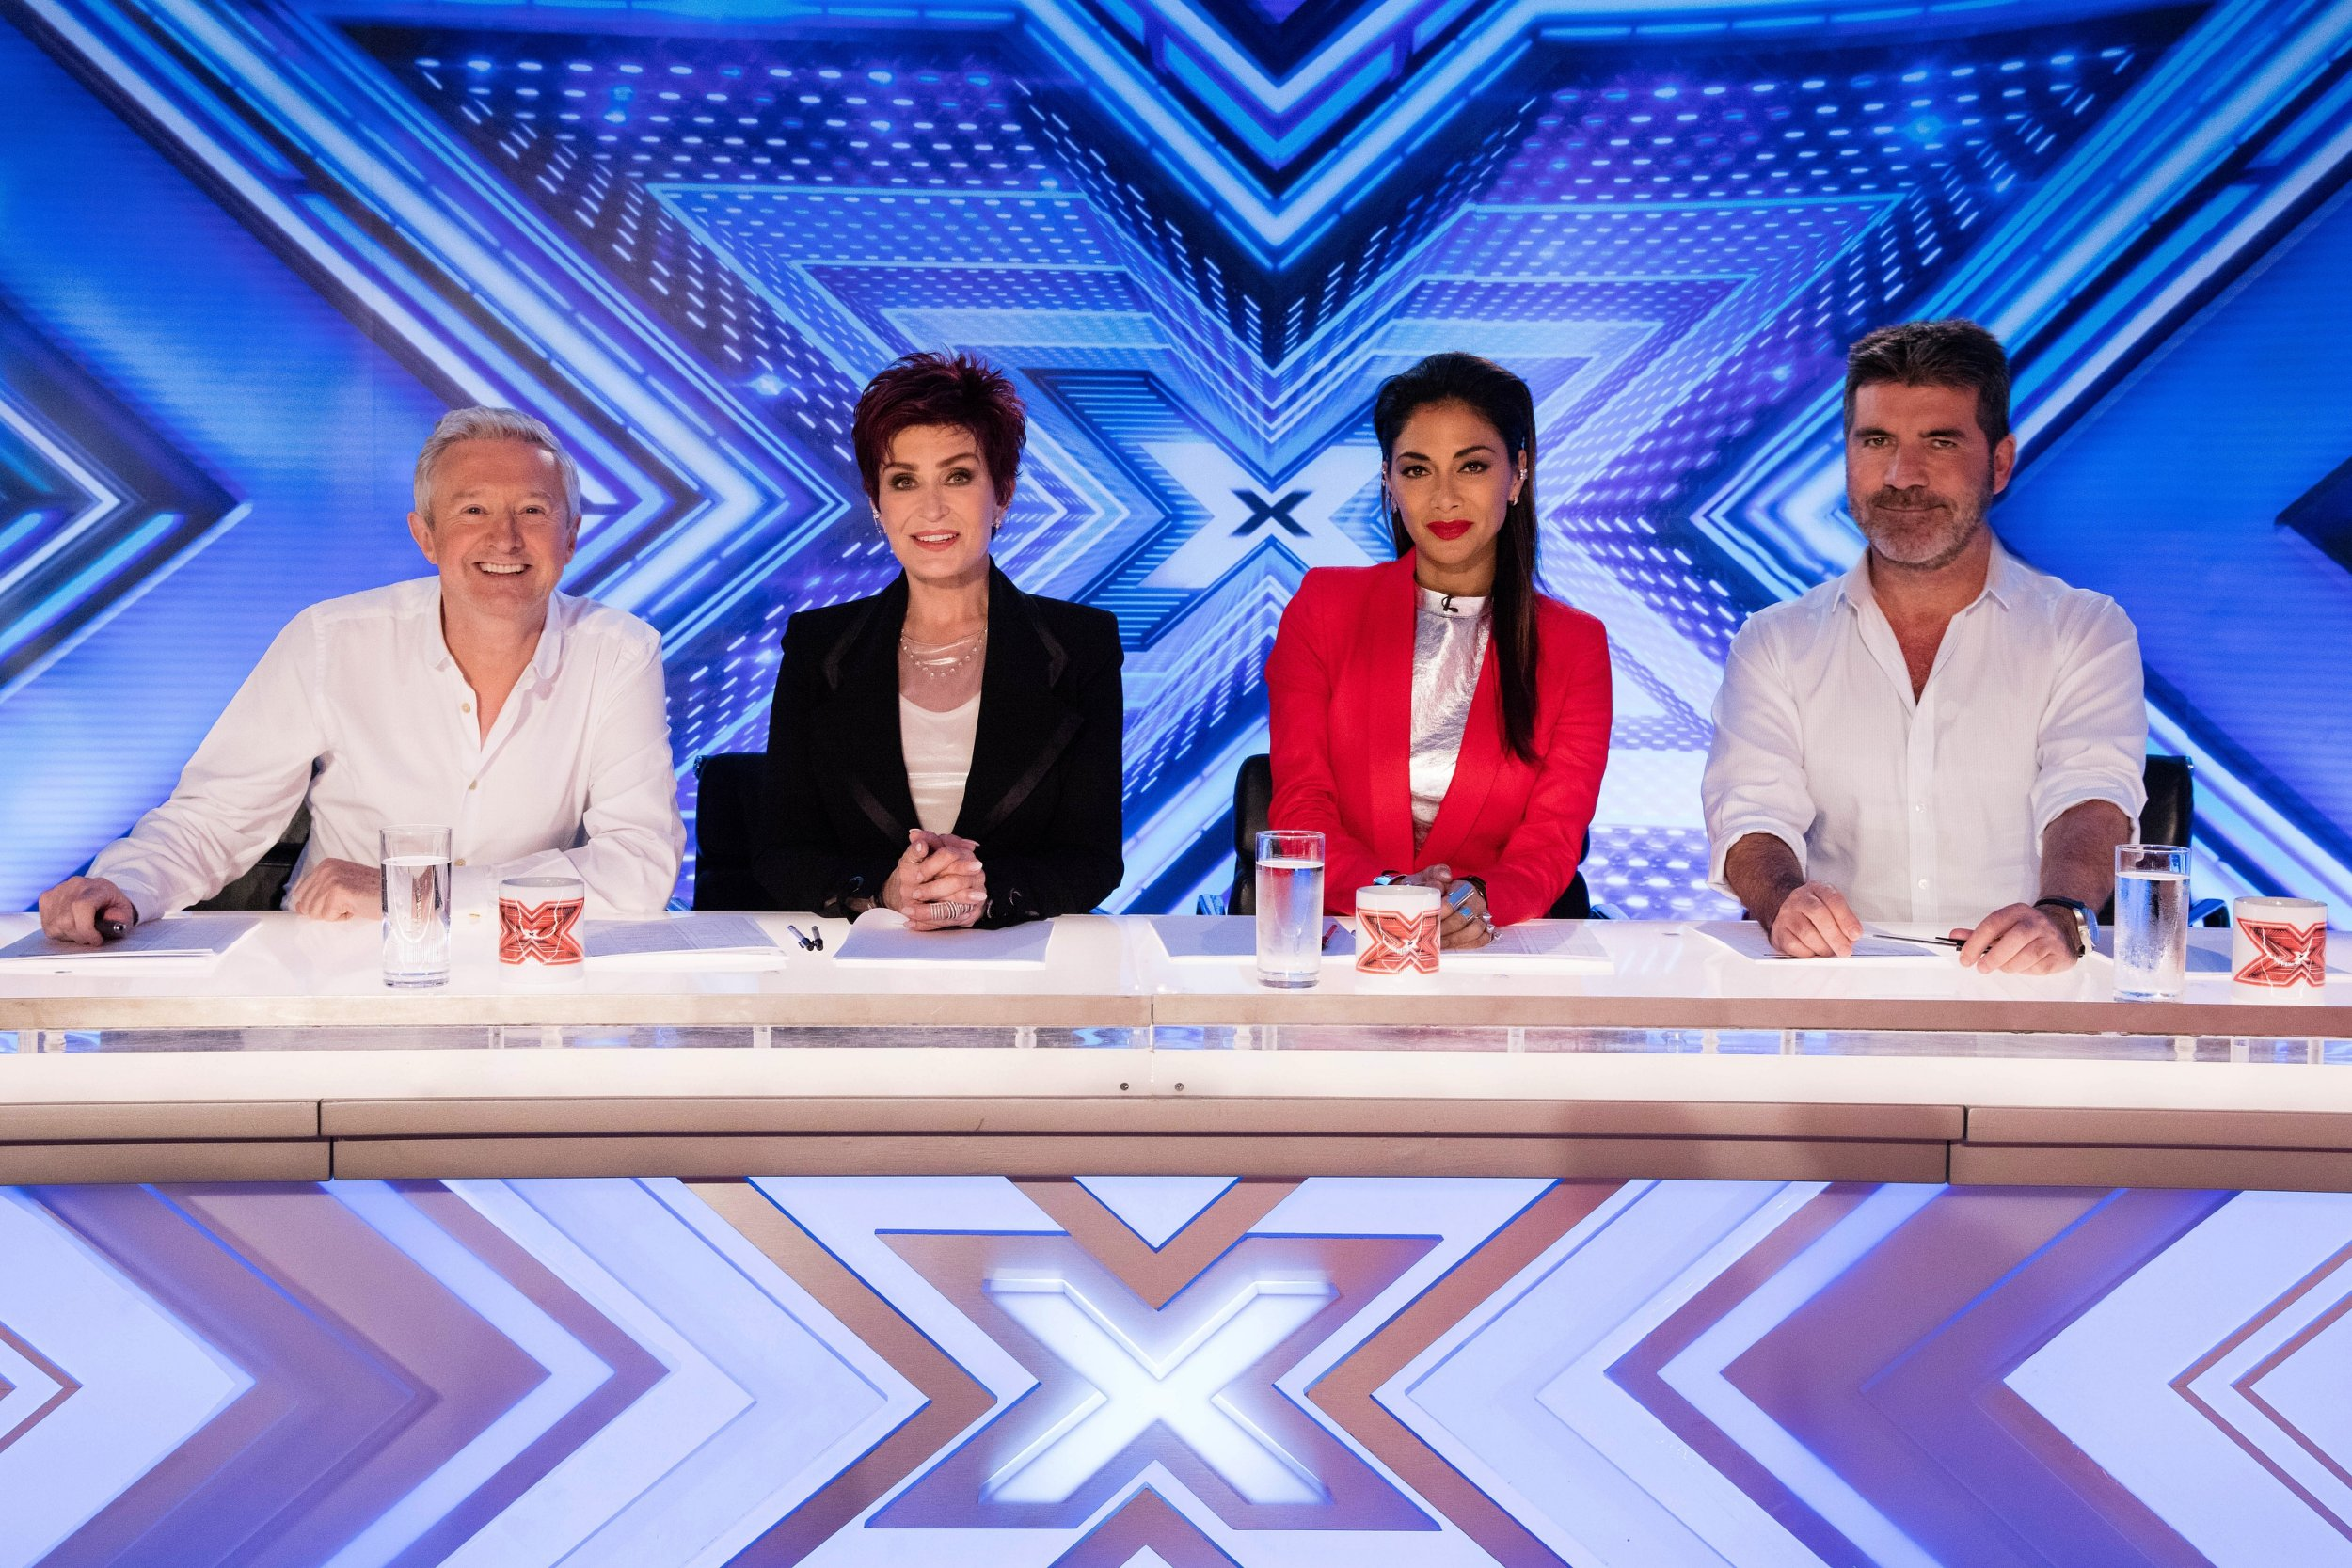 *** MANDATORY BYLINE TO READ: Syco / Thames / Dymond ***<BR /> ***MANDATORY BYLINE TO READ: Syco/Thames/Dymond*** Start of filming for the 2016 X Factor. The X Factor Judges, Simon Cowell, Sharon Osbourne, Nichole Scherzinger and Louis Walsh visit Leicester's King power Stadium for the first day of the room auditions. <P> Pictured: Louis Walsh, Sharon Osbourne, Nicole Scherzinger and Simon Cowell <B>Ref: SPL1300021 100616 </B><BR /> Picture by: Syco / Thames / Dymond<BR /> </P><P>